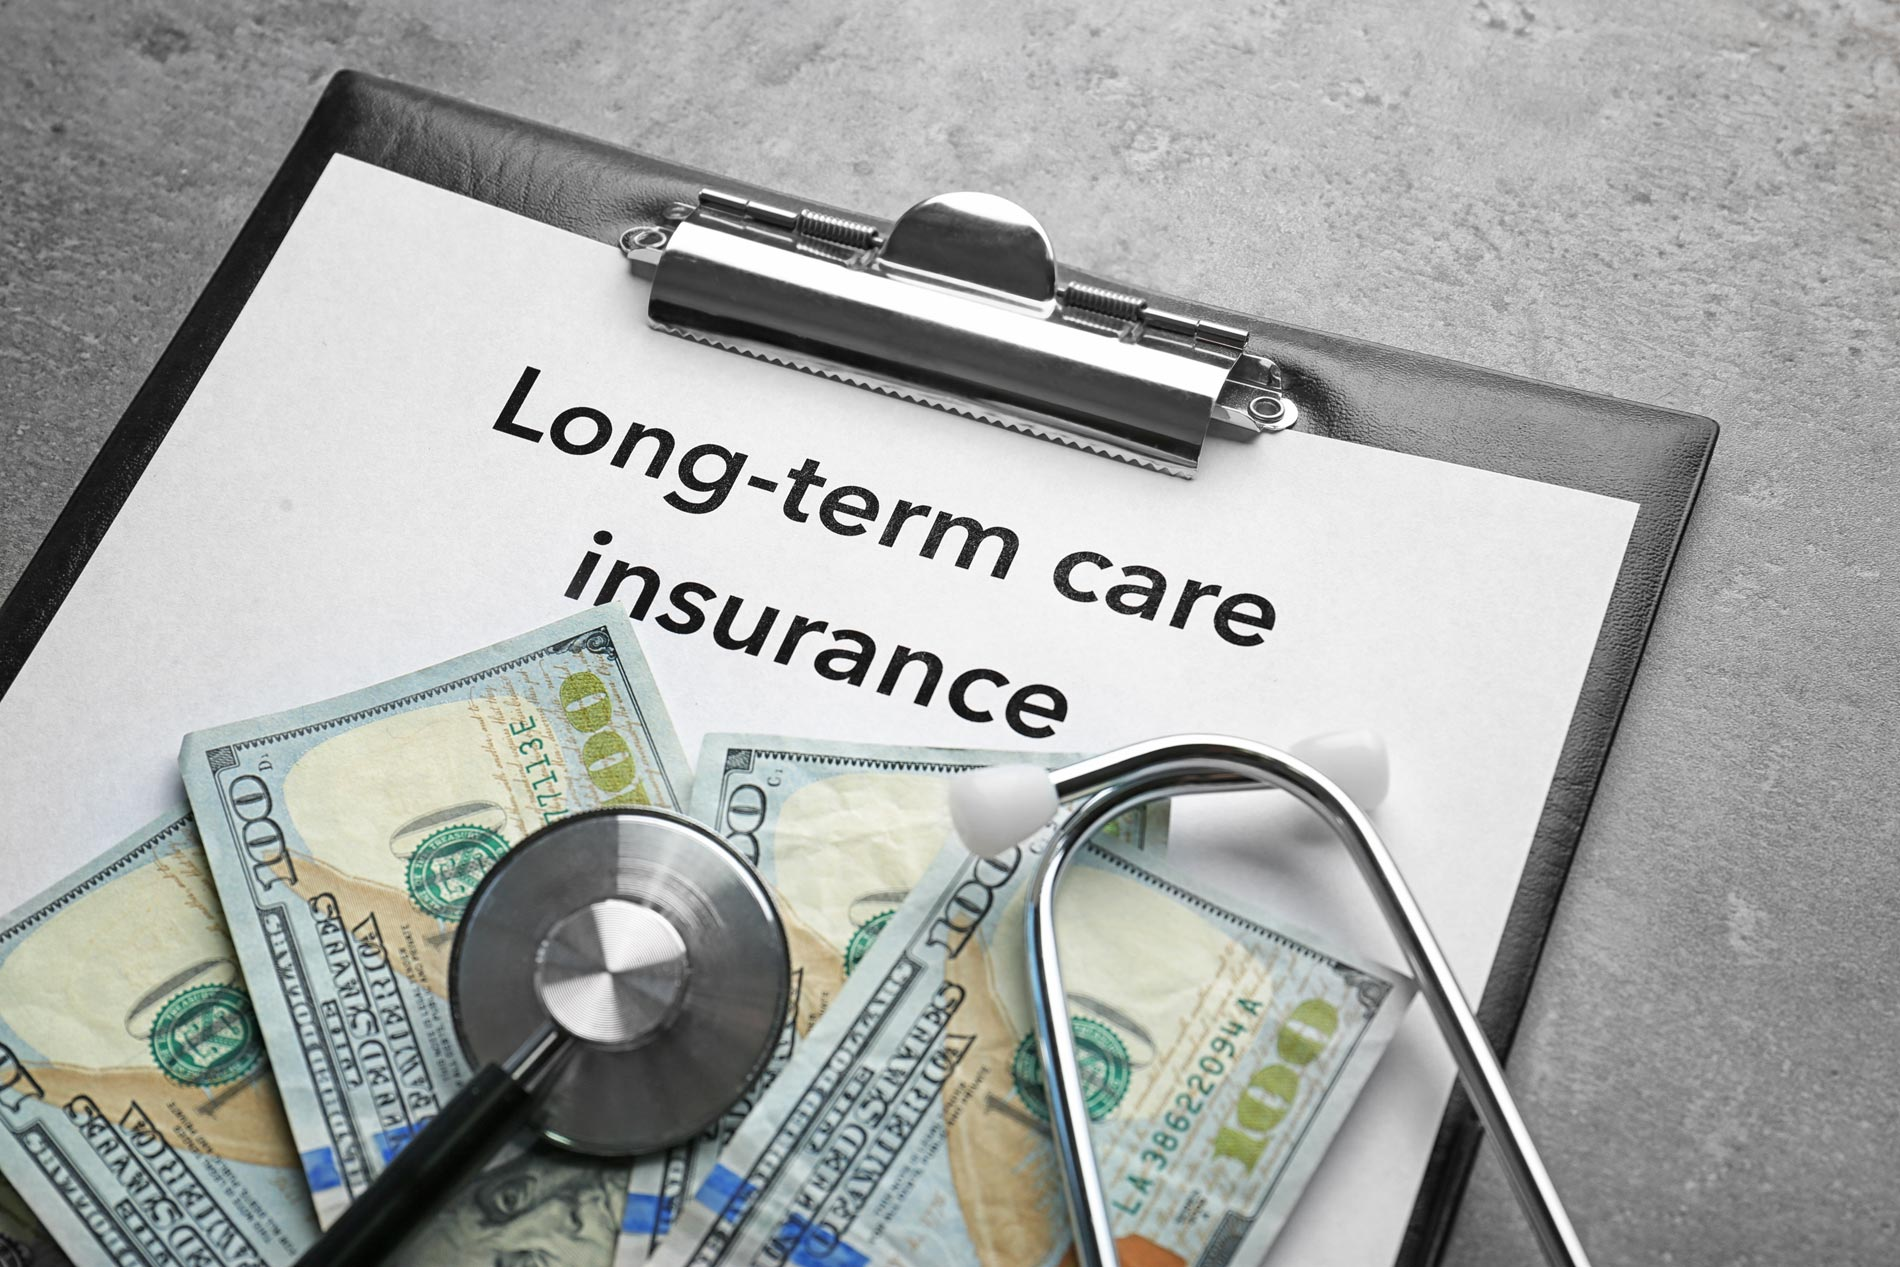 Long-term care insurance image